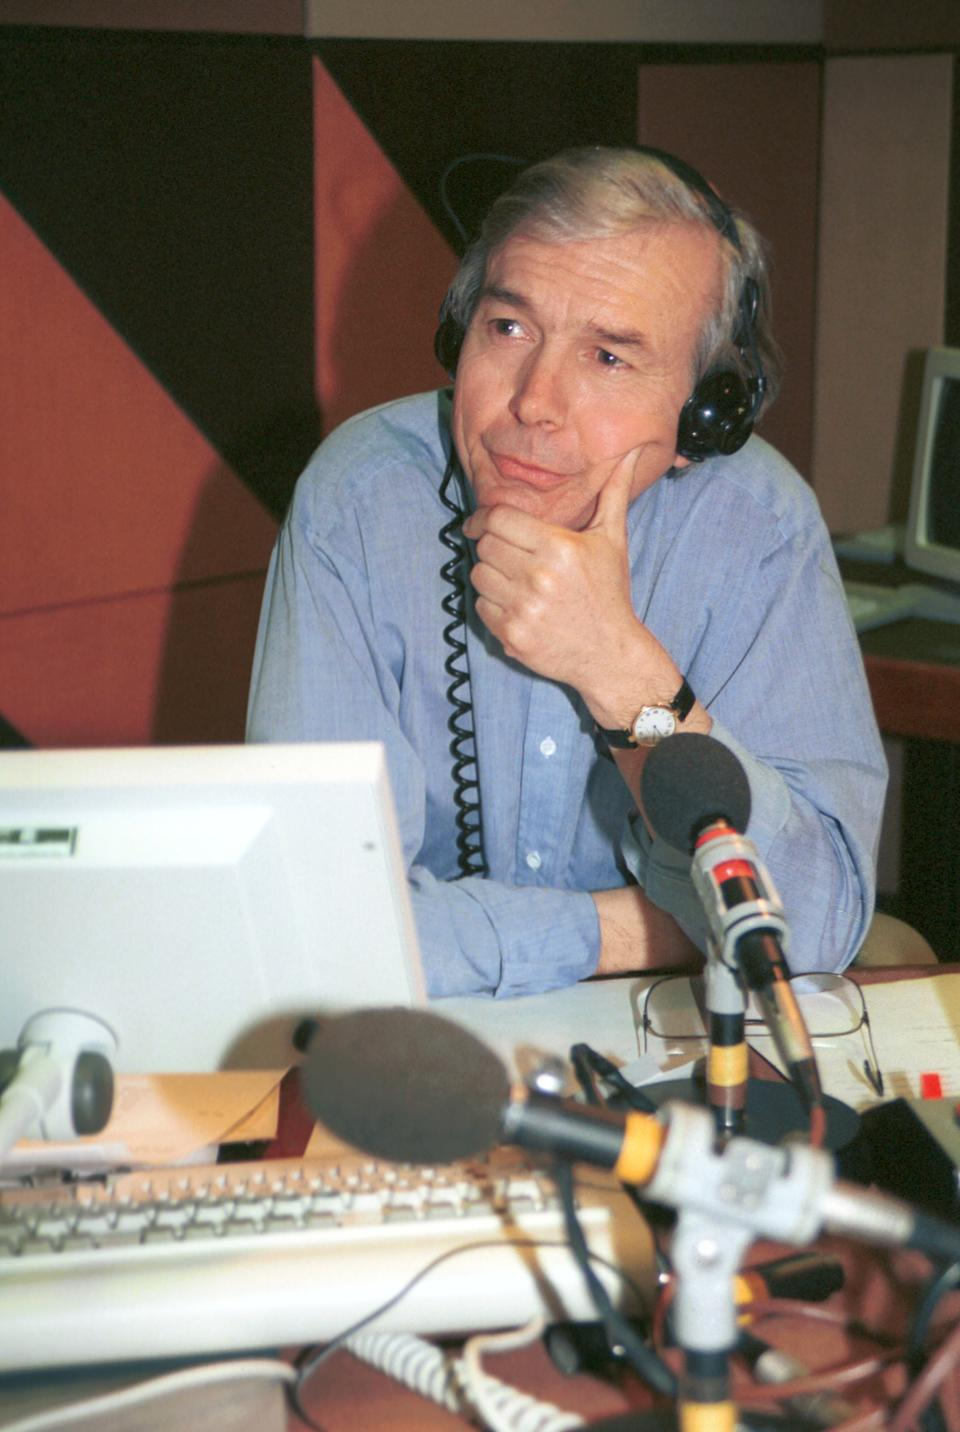 Today presenter and journalist John Humphrys (Photo by Jeff Overs/BBC News & Current Affairs via Getty Images)